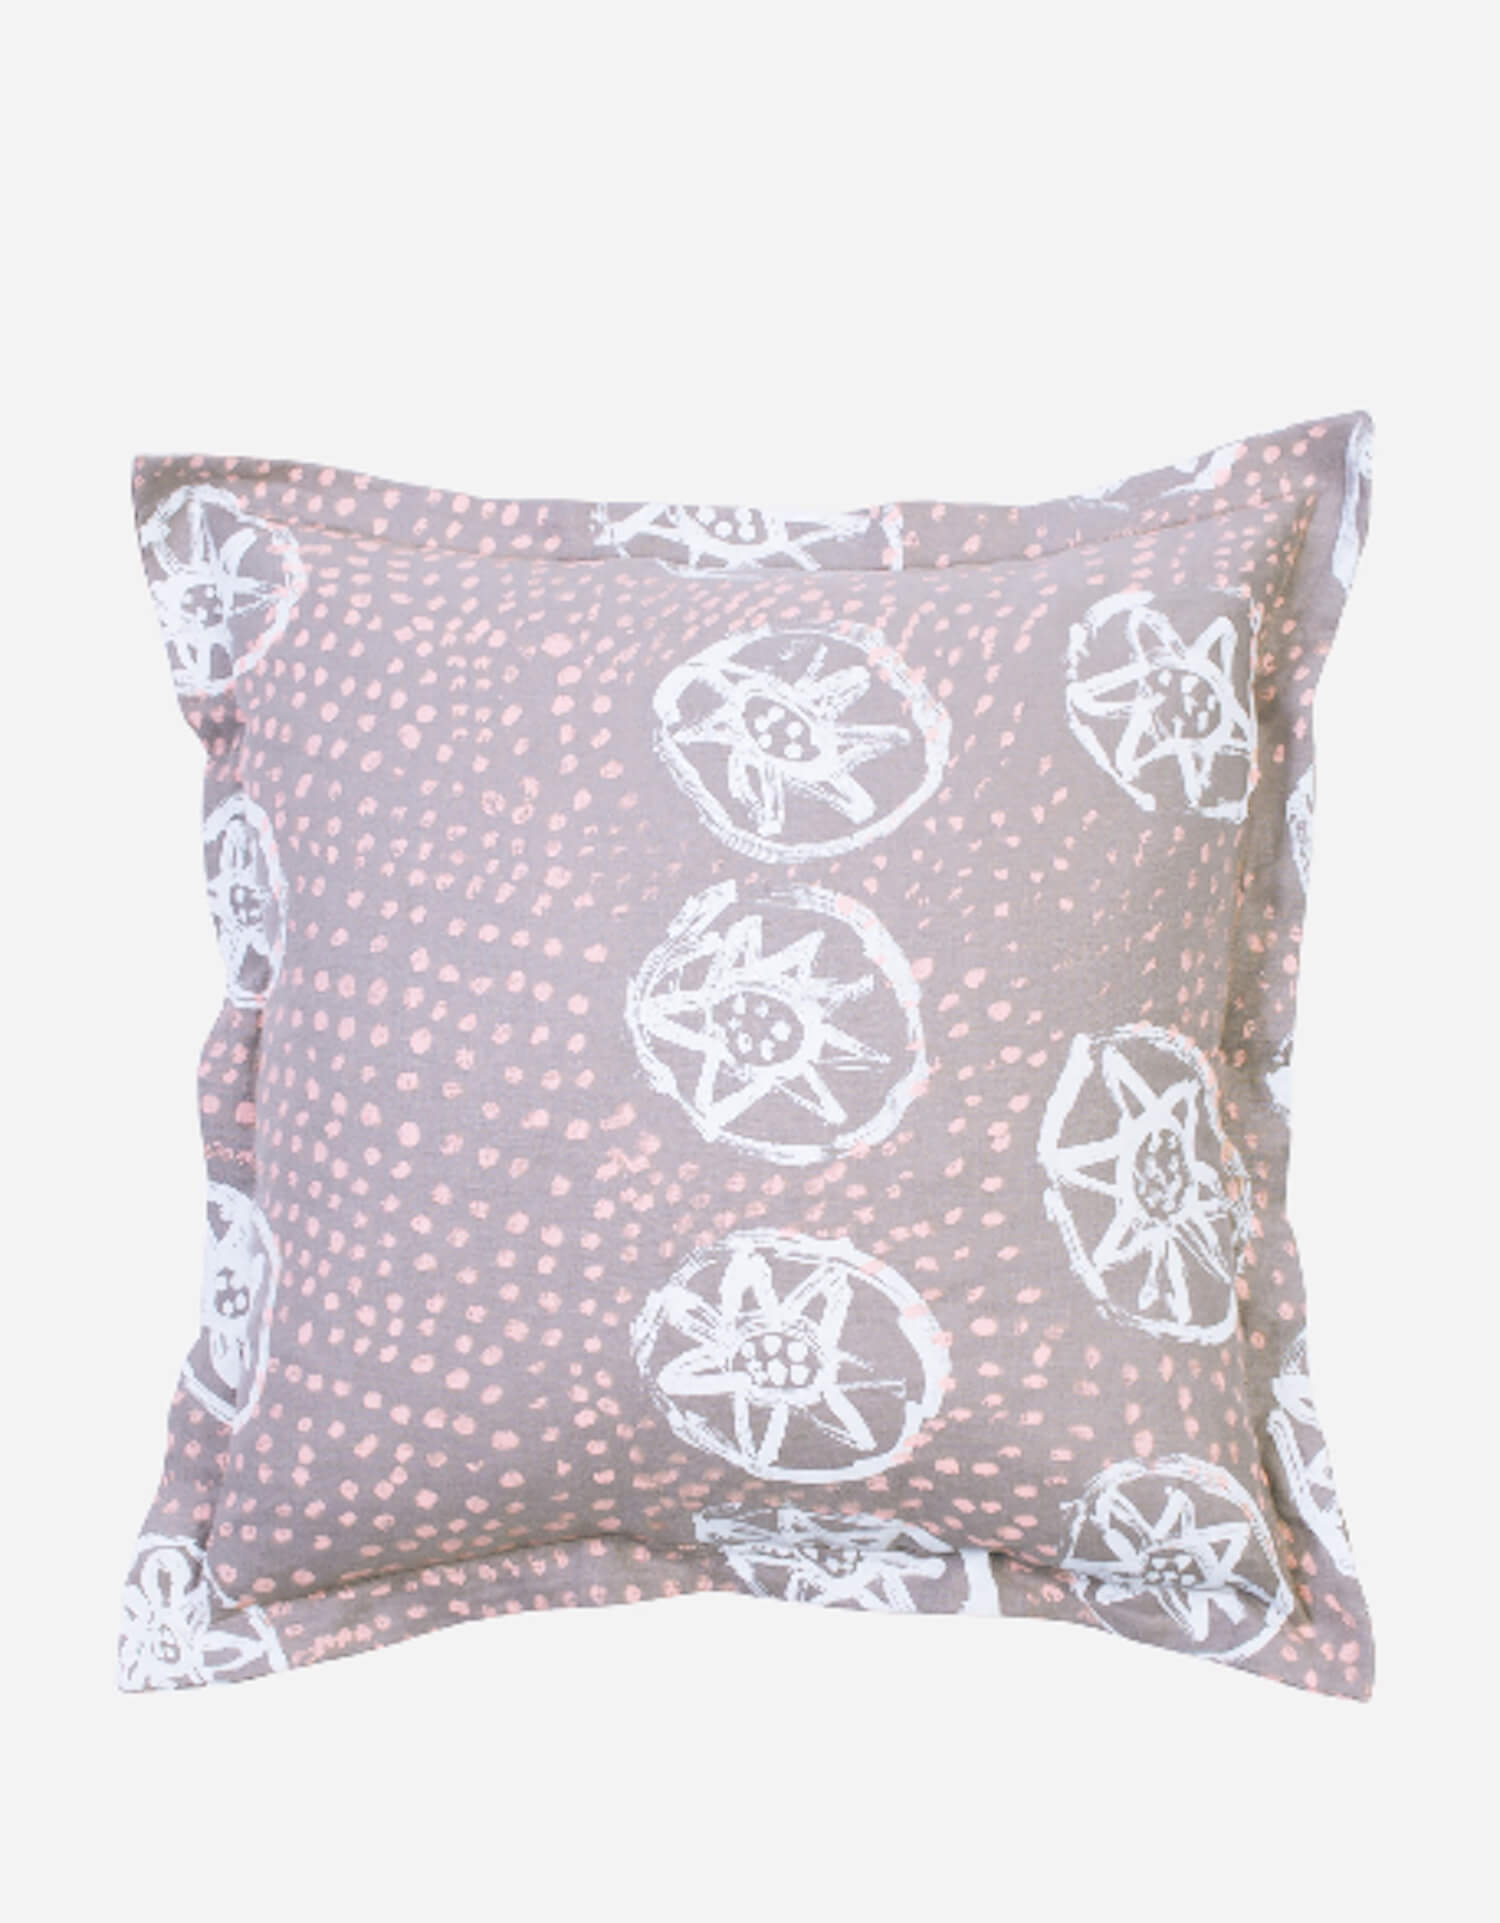 est living est edit indigenous artisans north home rokini cushion